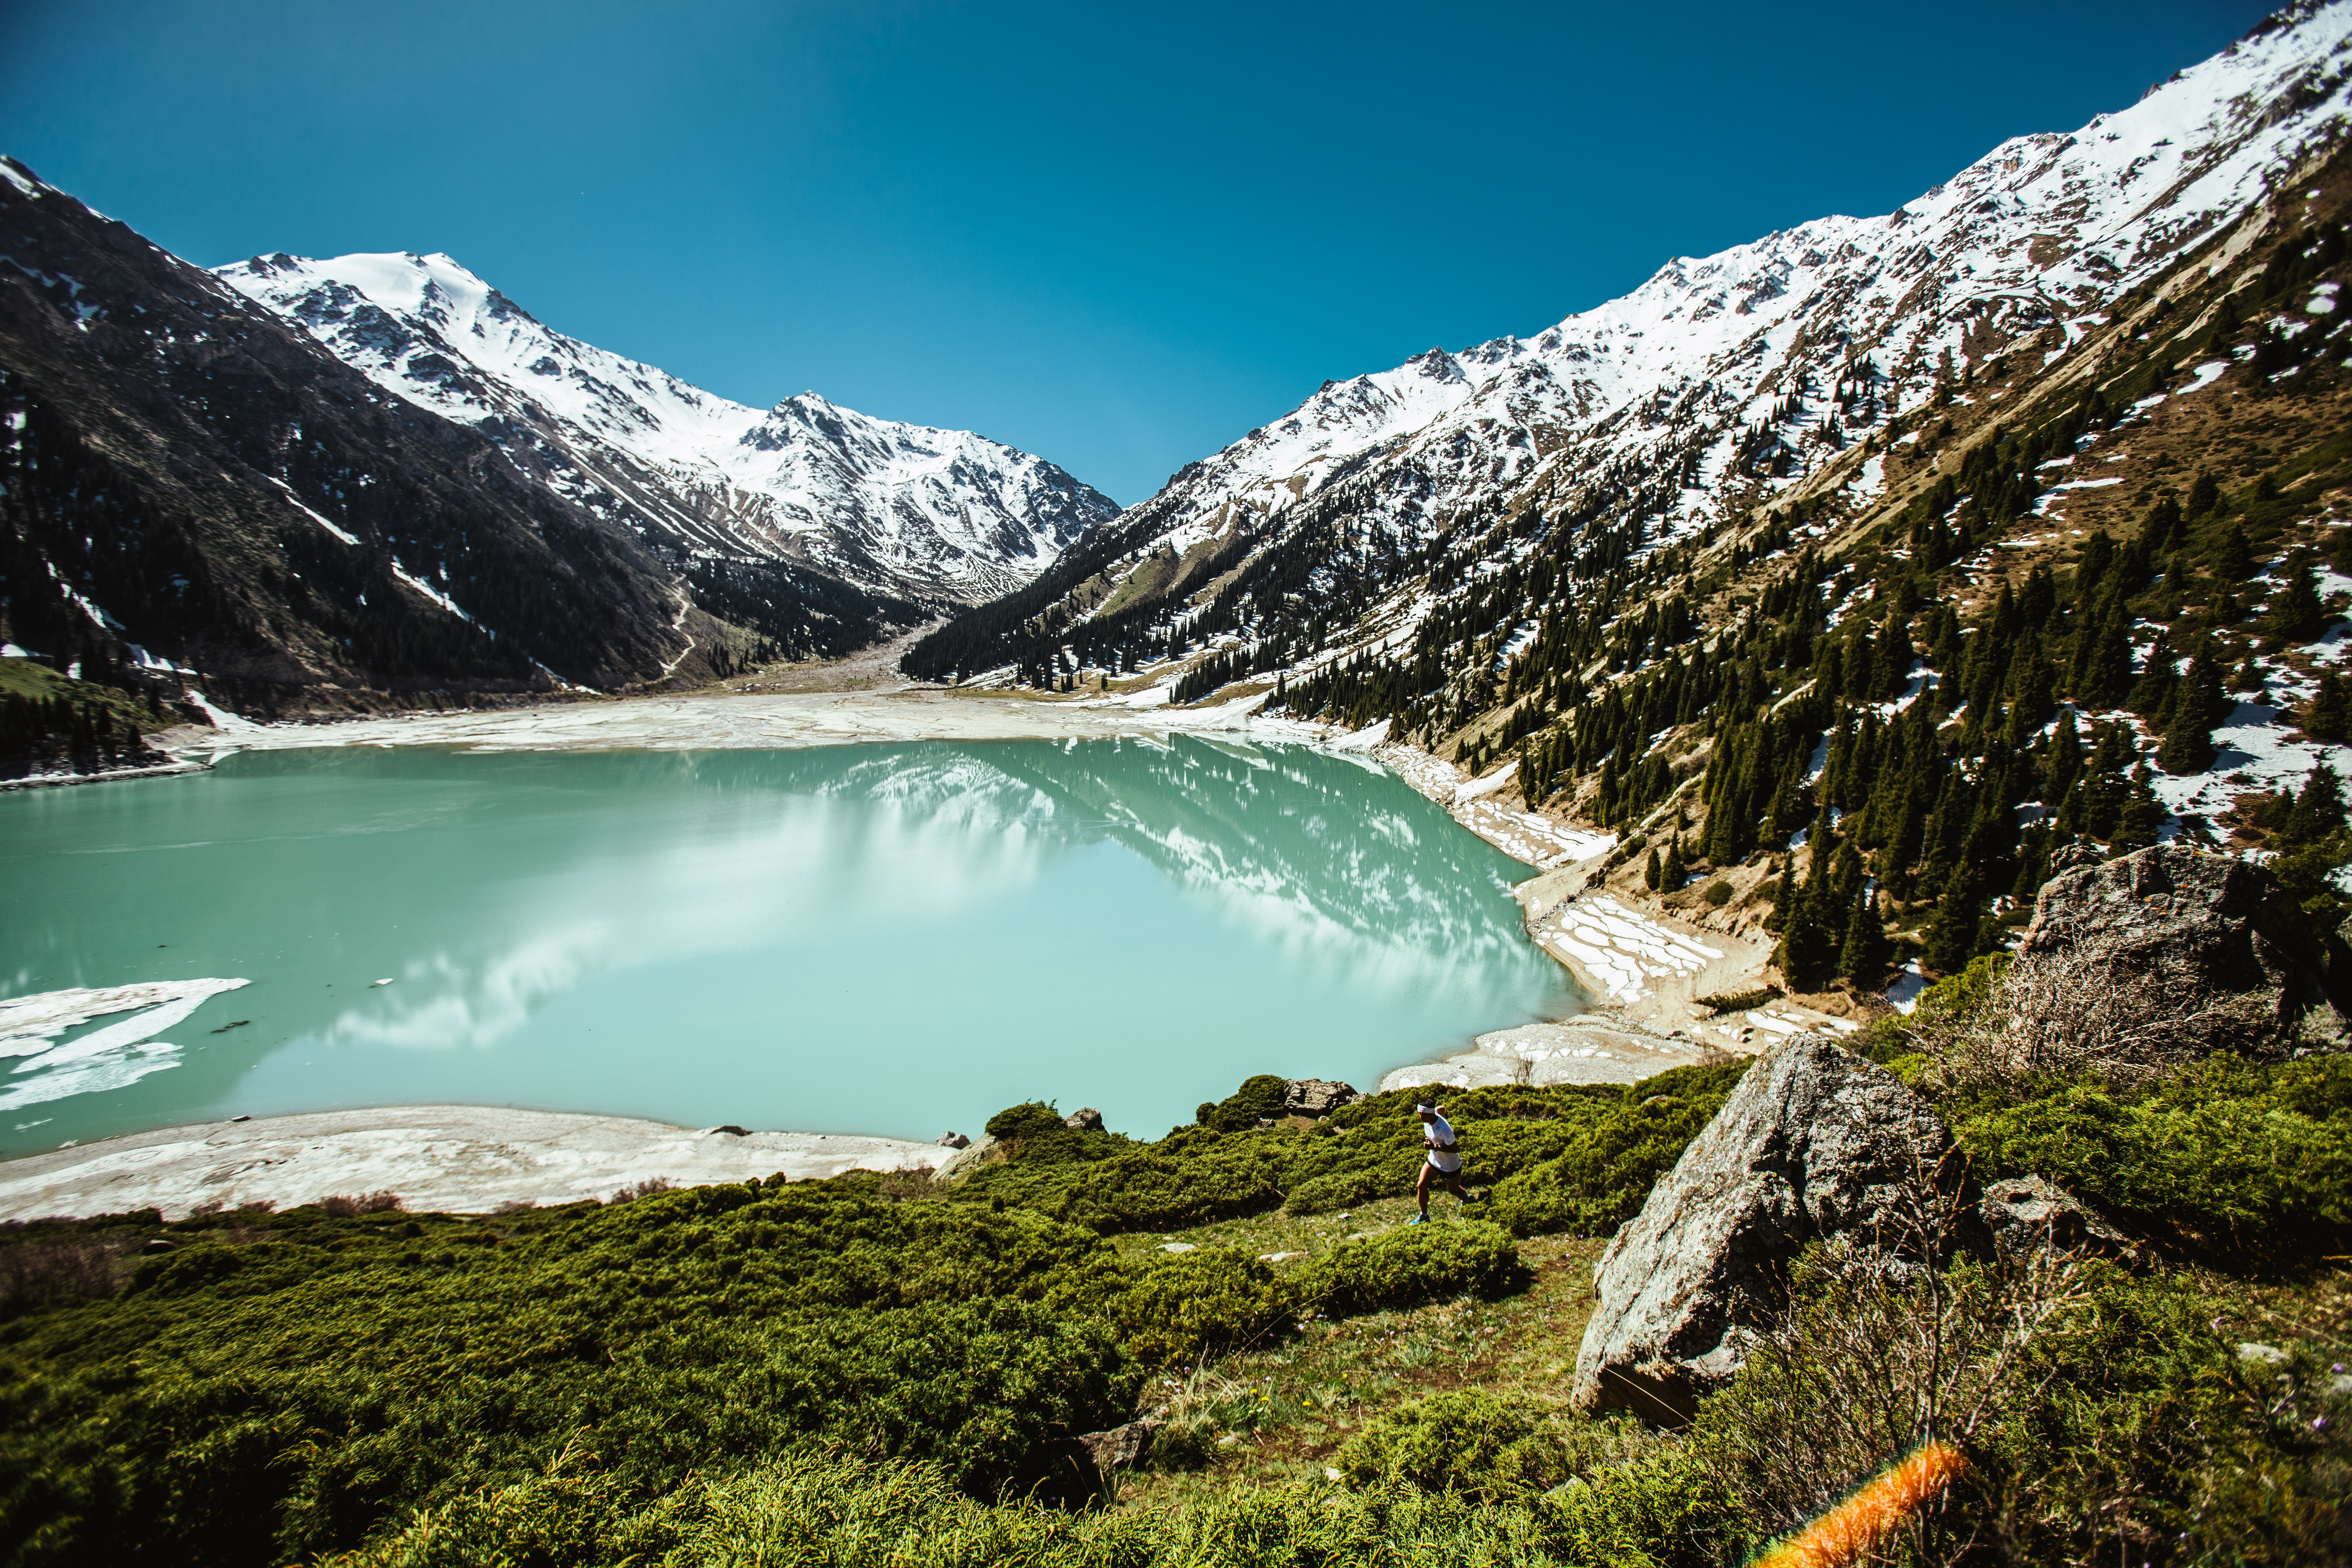 Blue Lake Surrounded by White Snowcapped Mountain, Daylight, Grass, Lake, Nature, HQ Photo